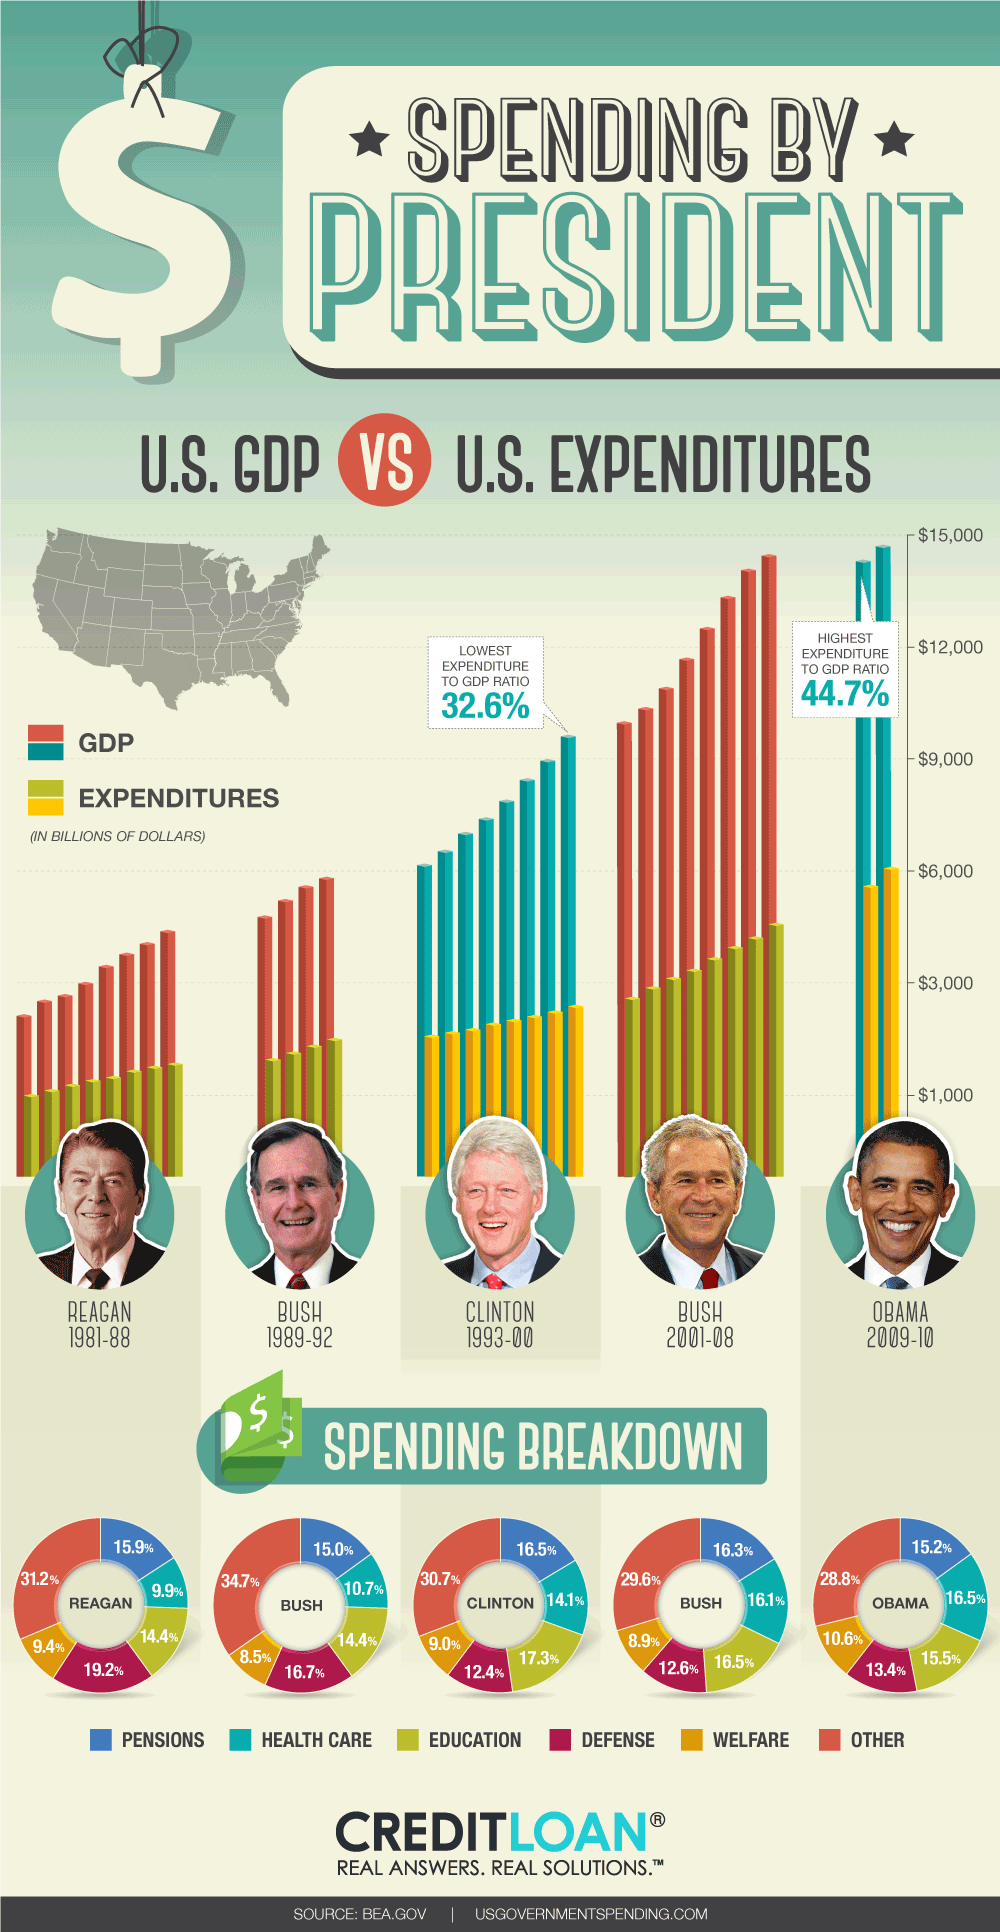 IMAGE(http://www.visualeconomics.com/wp-content/uploads/2010/02/VE-PRESIDENTIAL-SPENDING-R2.png)